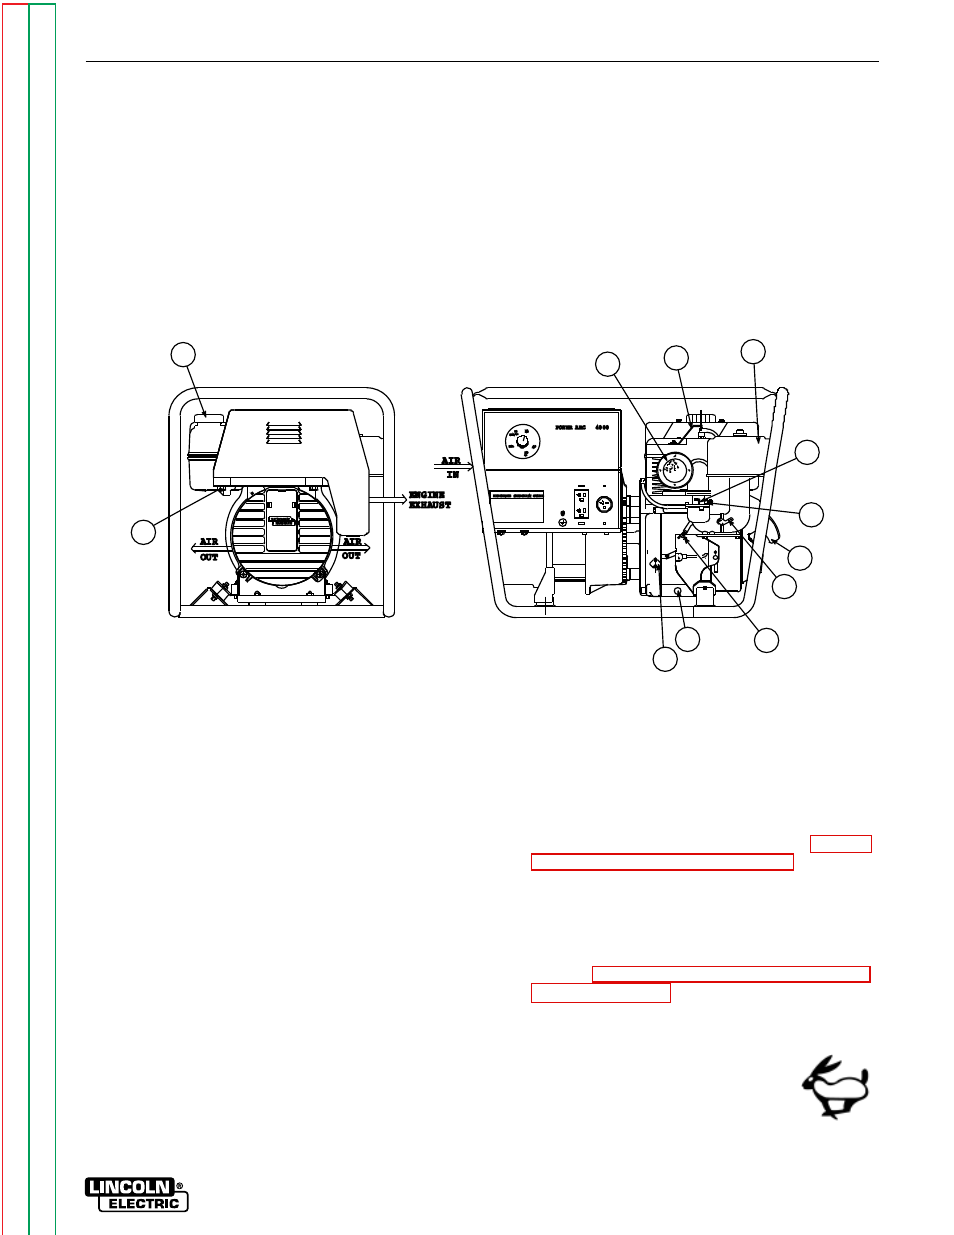 Operation And Maintenance Sections Of This Figure B2 120 240 Volt Receptacles How To Install A Switch Or Receptacle Gasoline Engine Controls Lincoln Electric Power Arc 4000 Svm103 User Manual Page